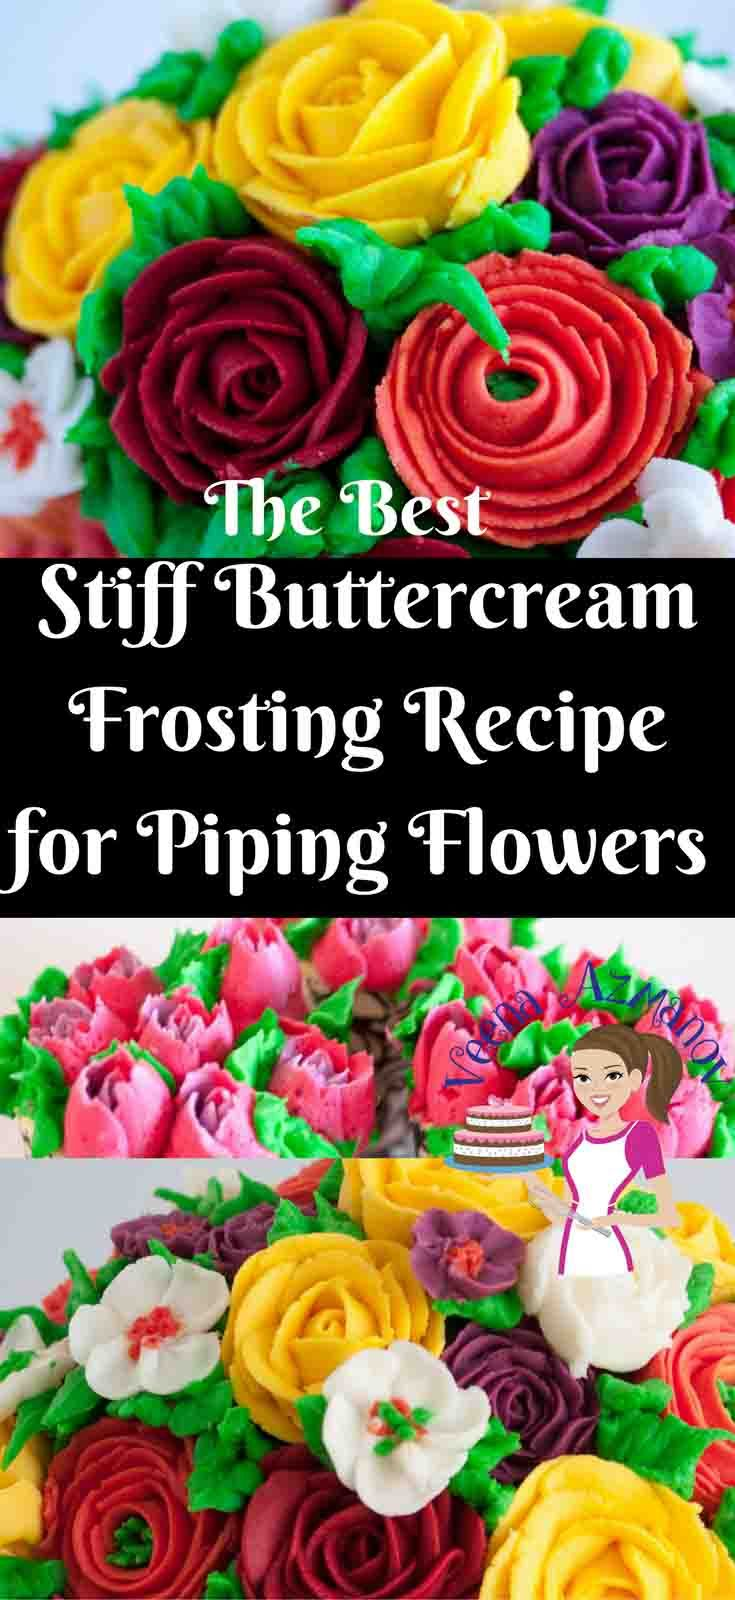 The Best Stiff Buttercream Recipe for Piping Flowers - Crusting Buttercream Recipe - Veena Azmanov